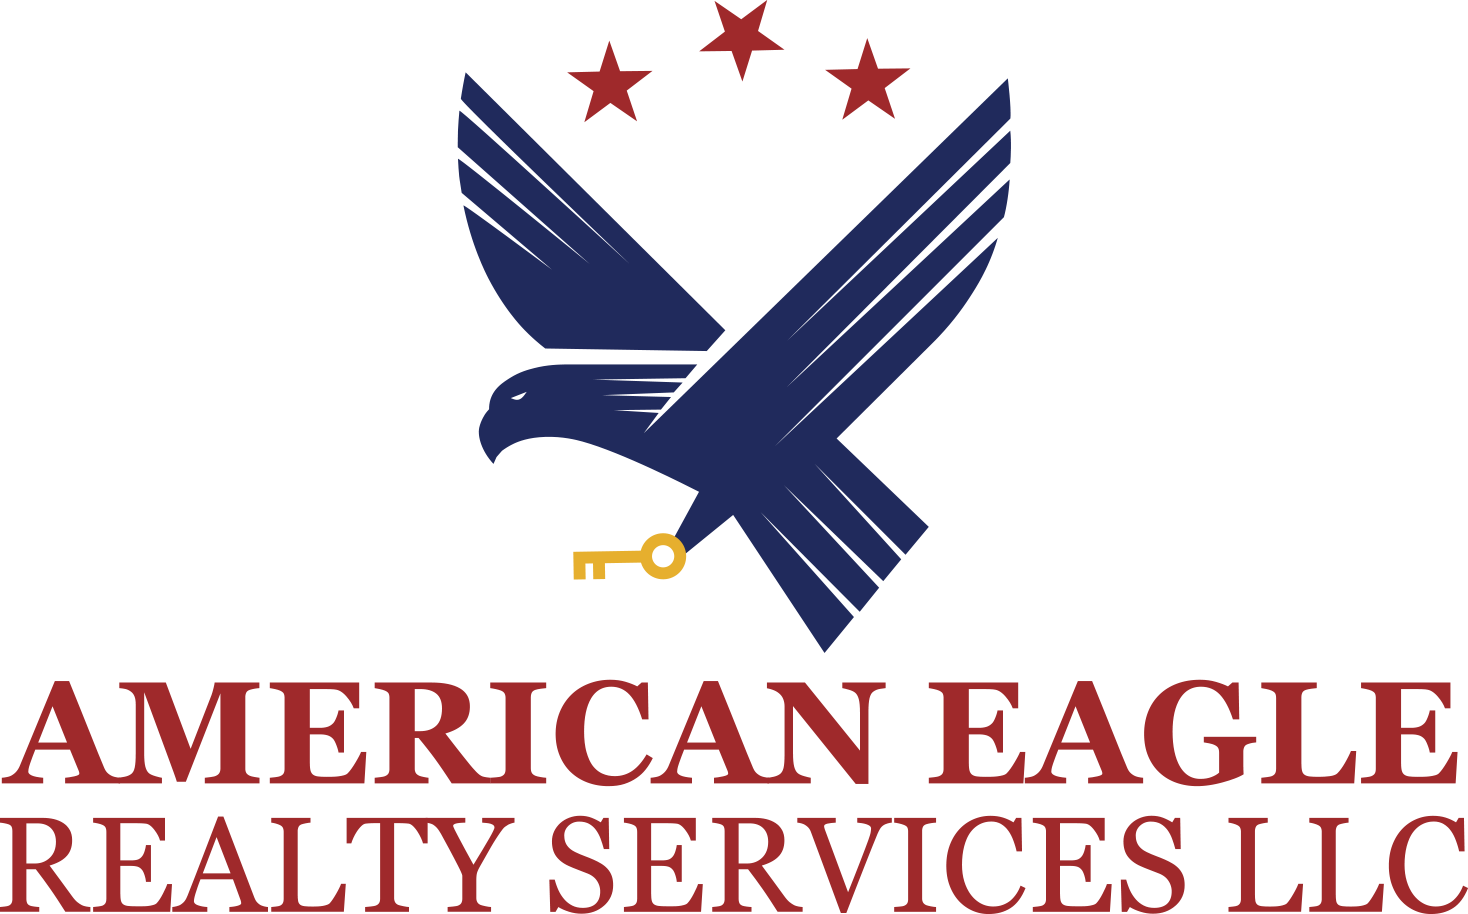 AMERICAN EAGLE REALTY SERVICES